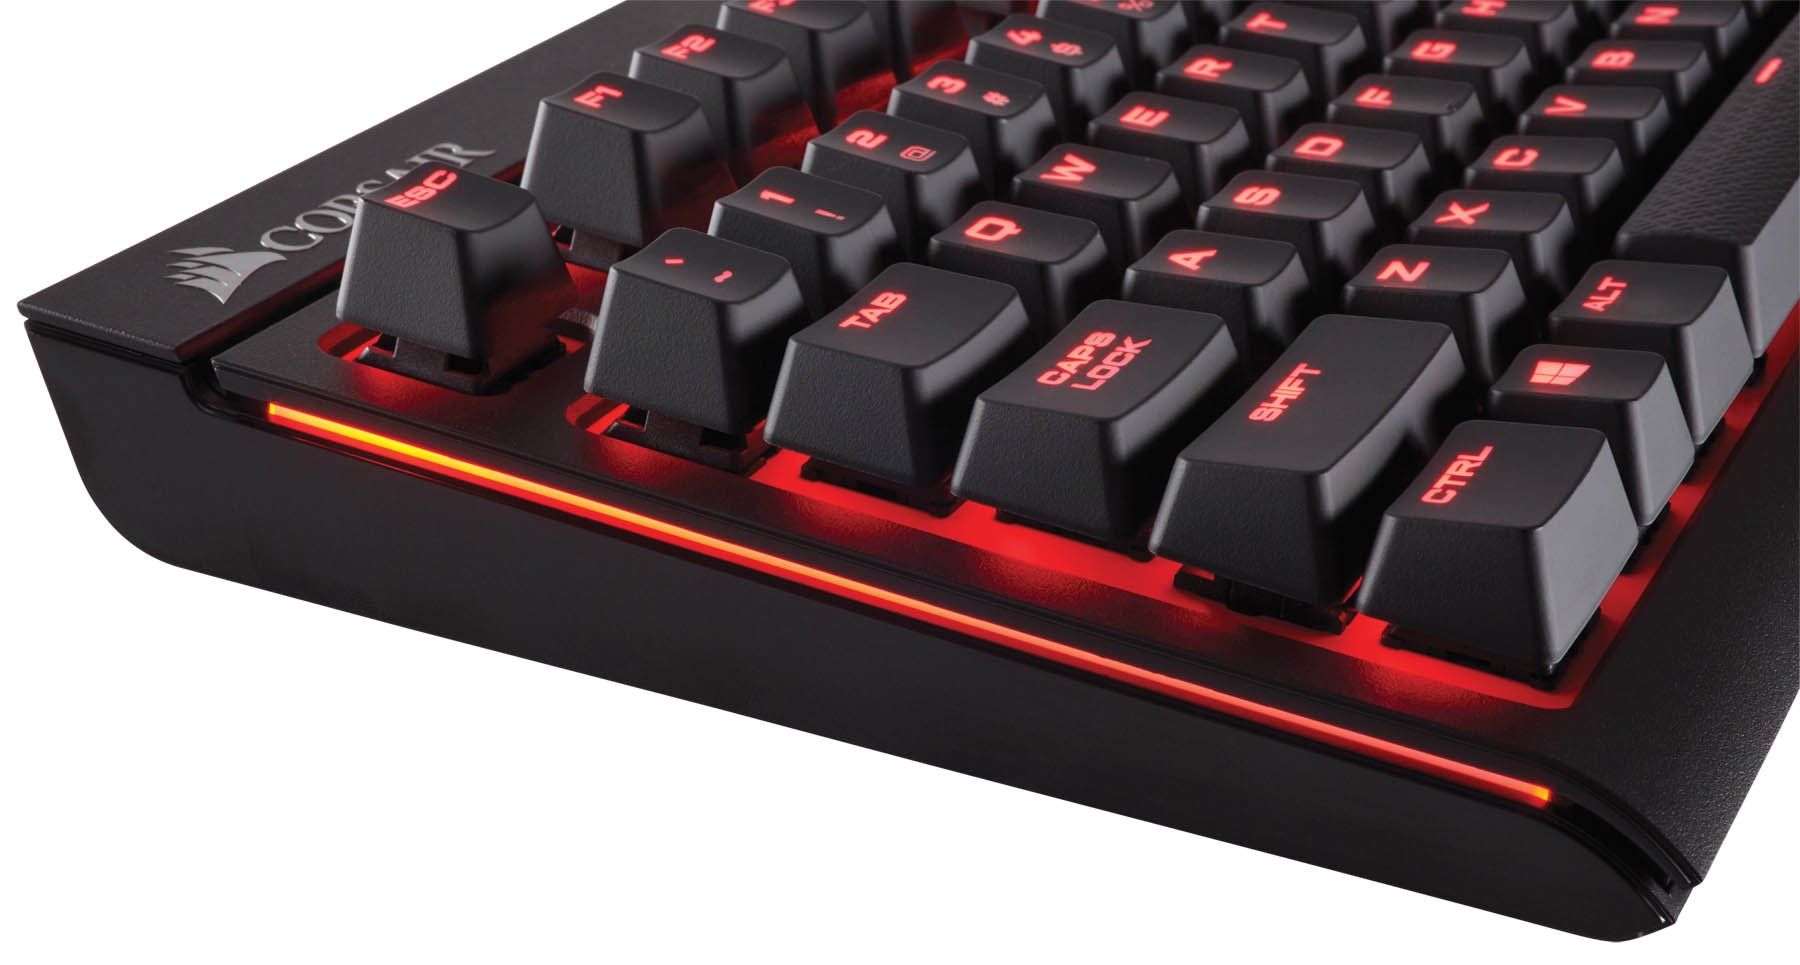 CORSAIR STRAFE Mechanical Gaming Keyboard - Red LED Backlit - USB Passthrough - Linear and Quiet - Cherry MX Red Switch by Corsair (Image #7)